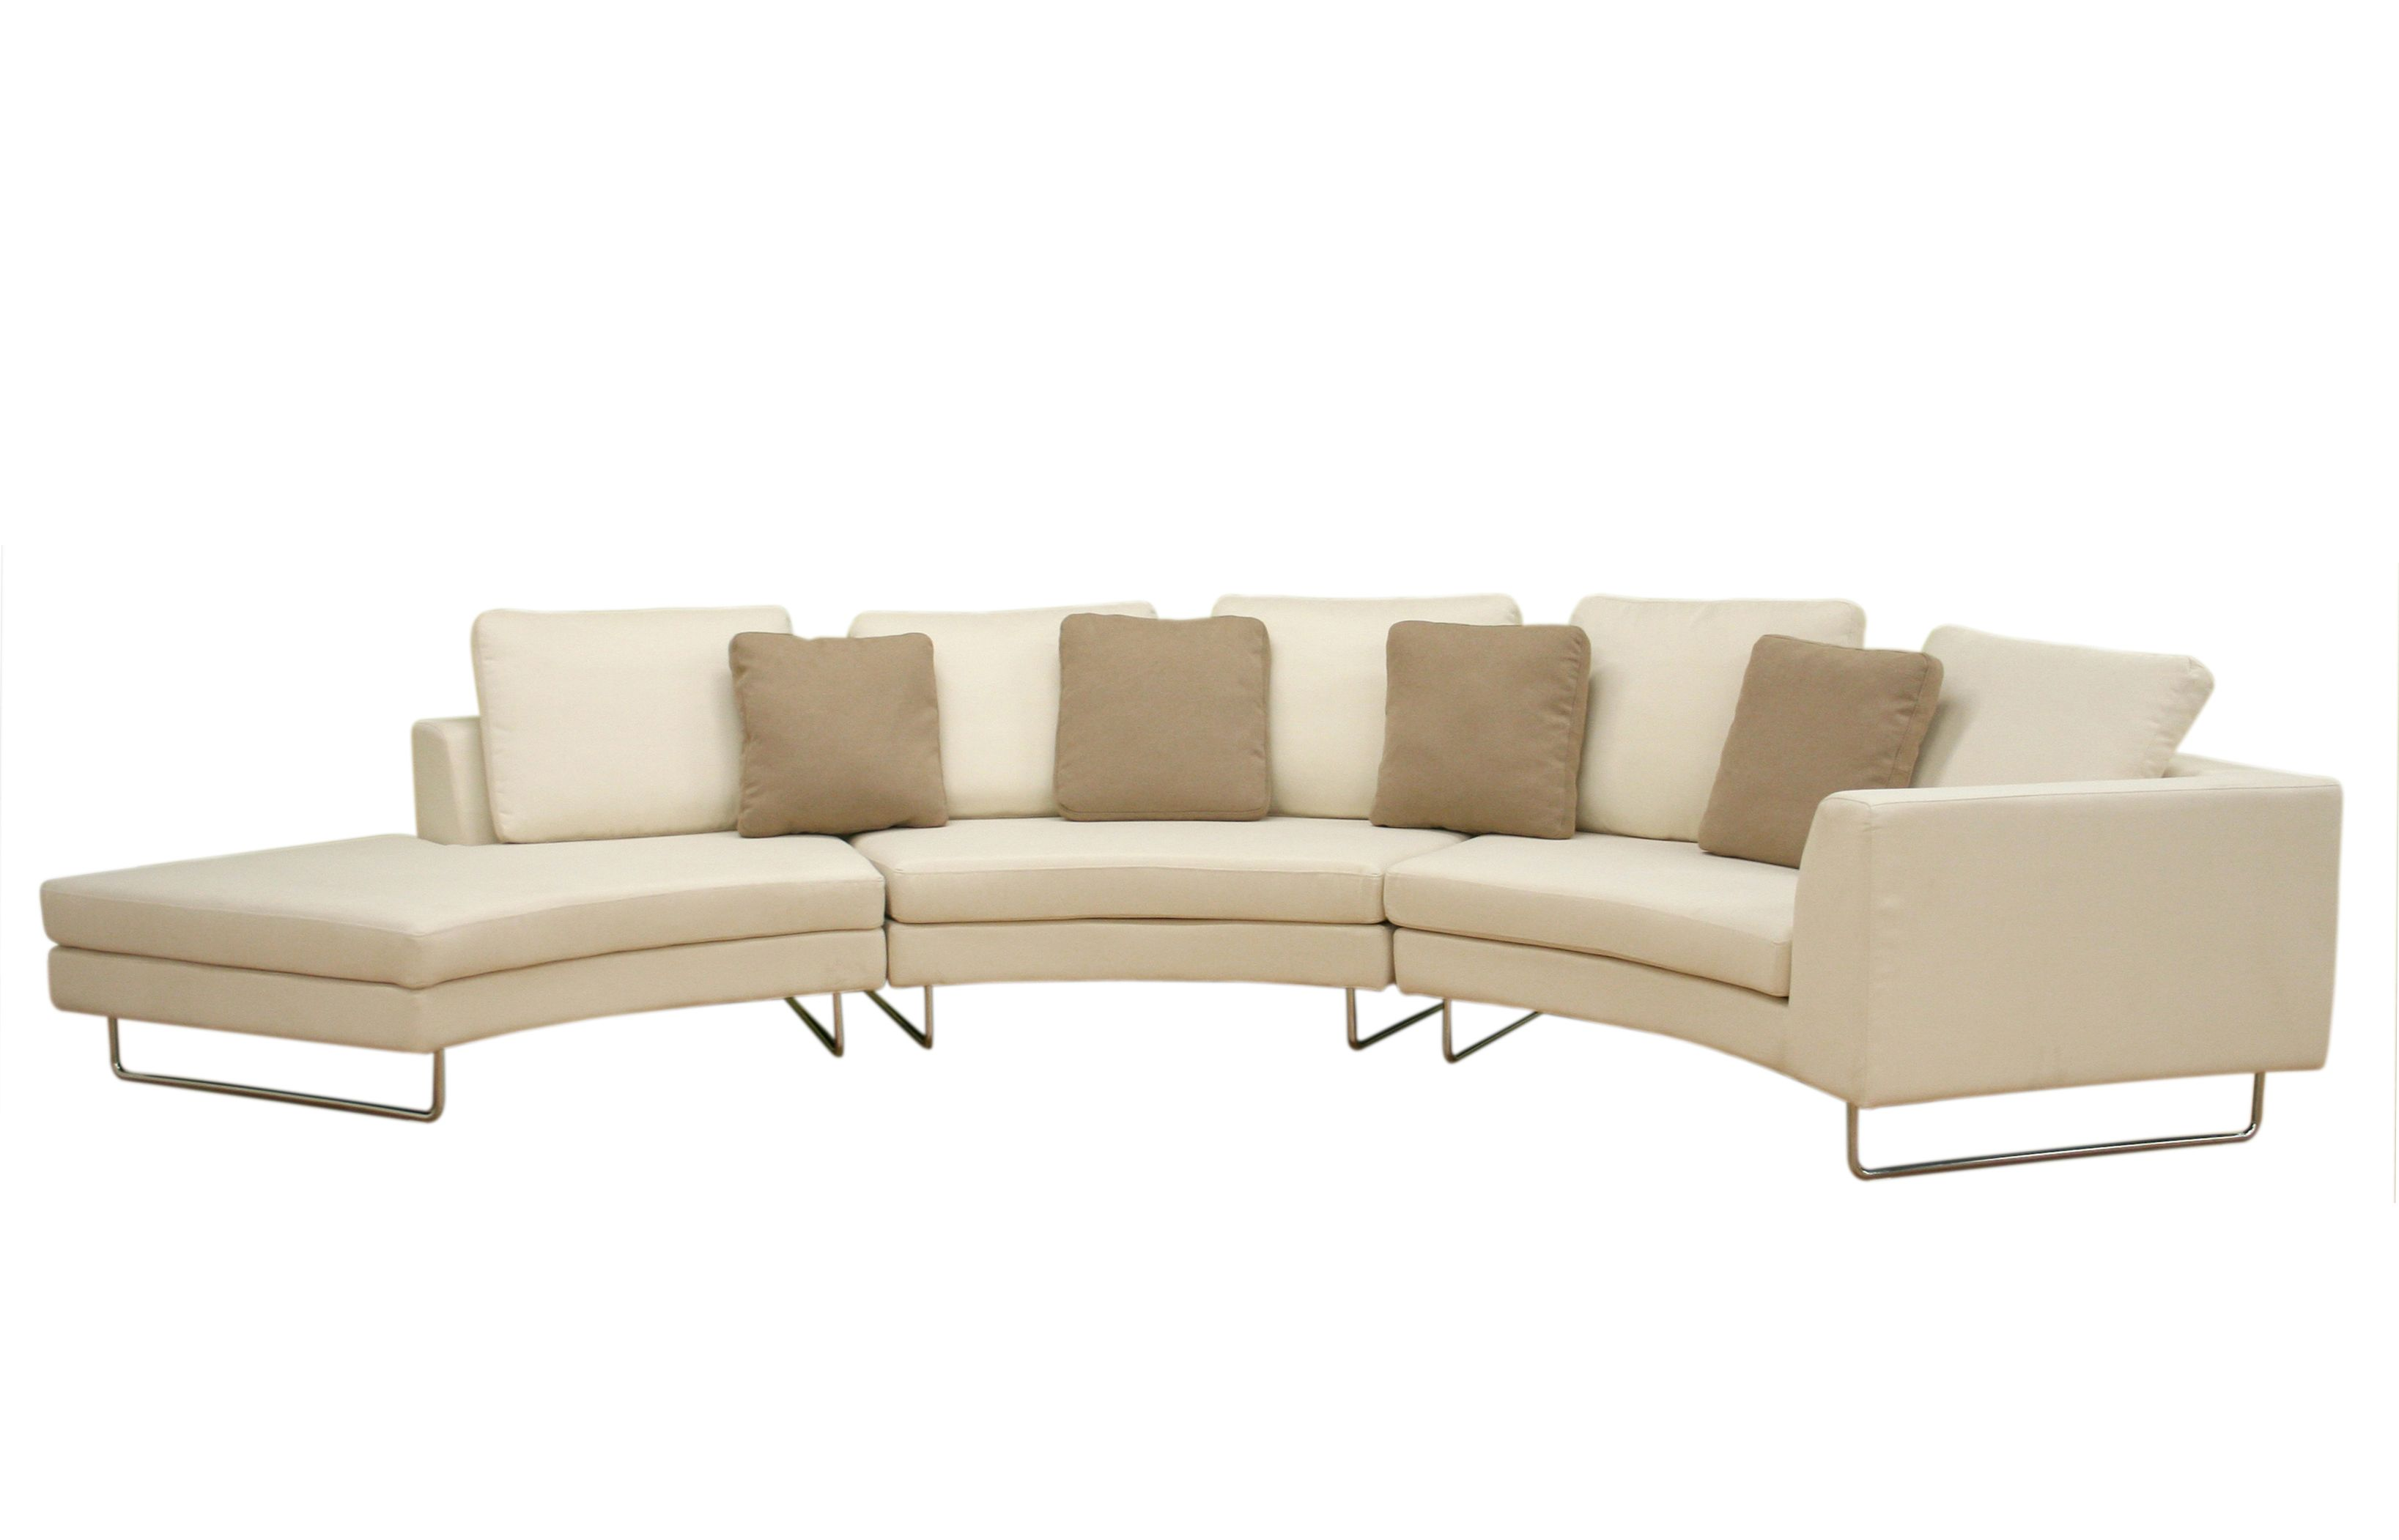 Large round curved sofa sectional baxton studio lilia curved 3 piece tan fabric modern Curved loveseat sofa